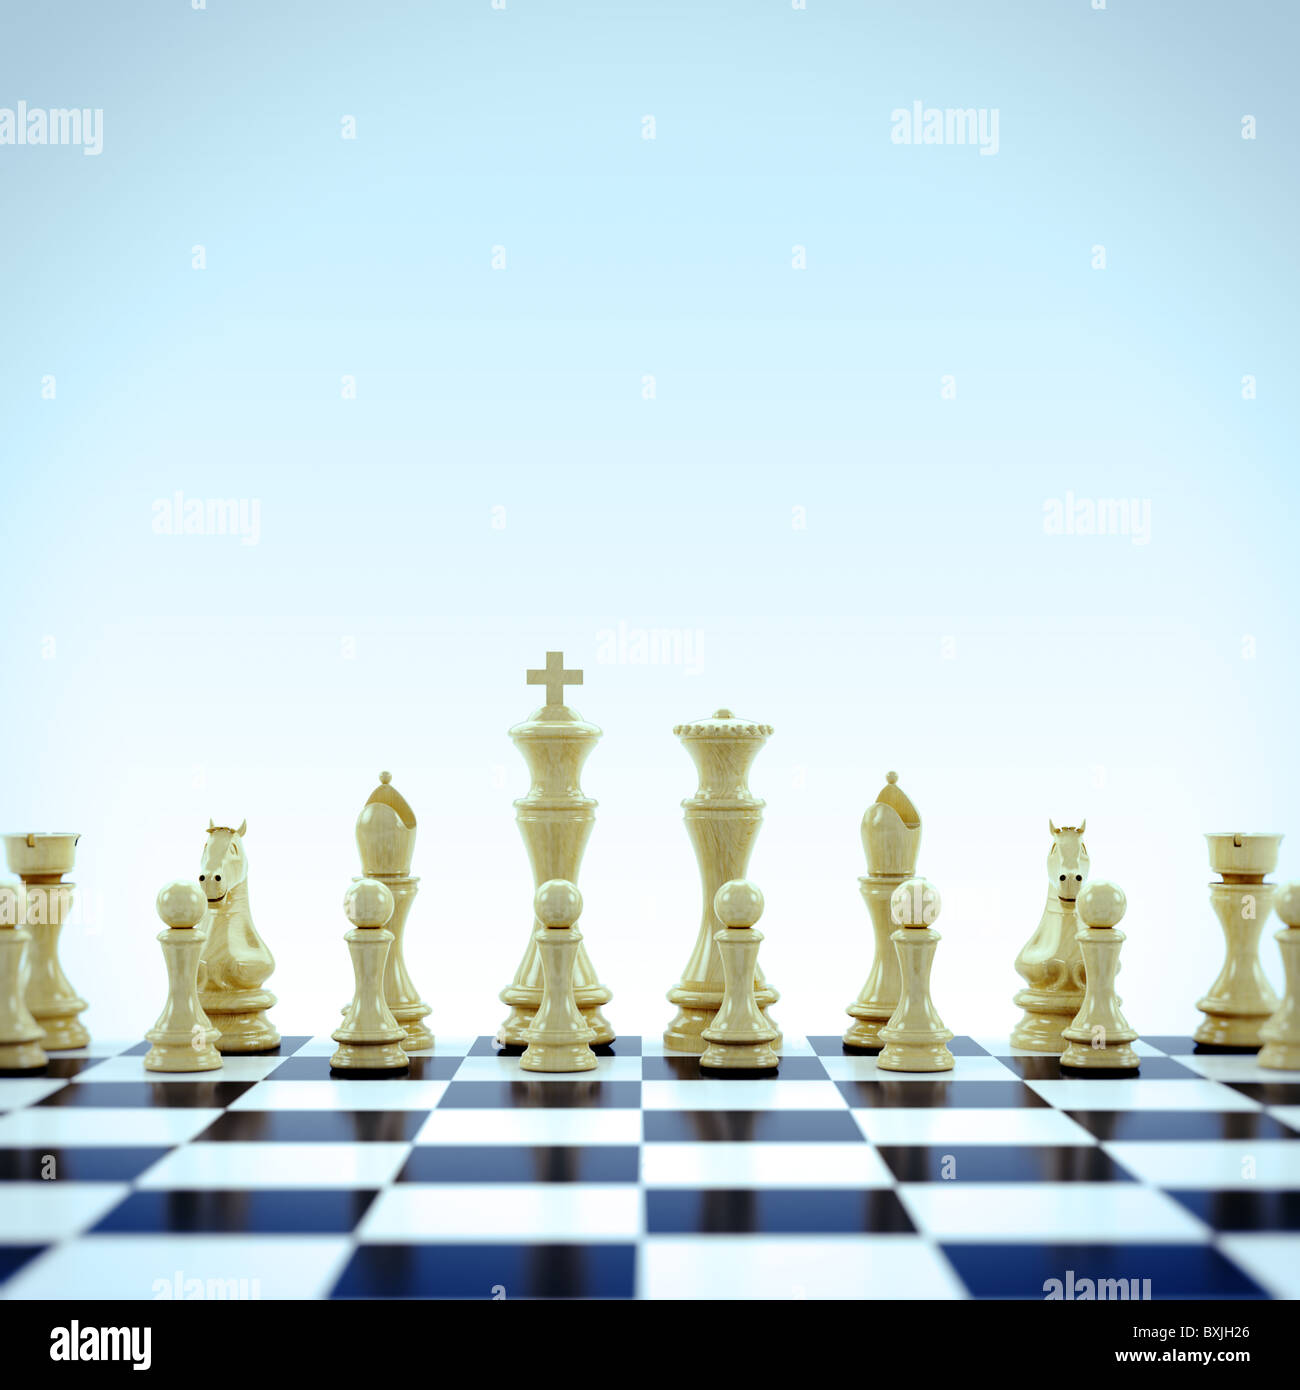 White chess pieces on chess board - Stock Image